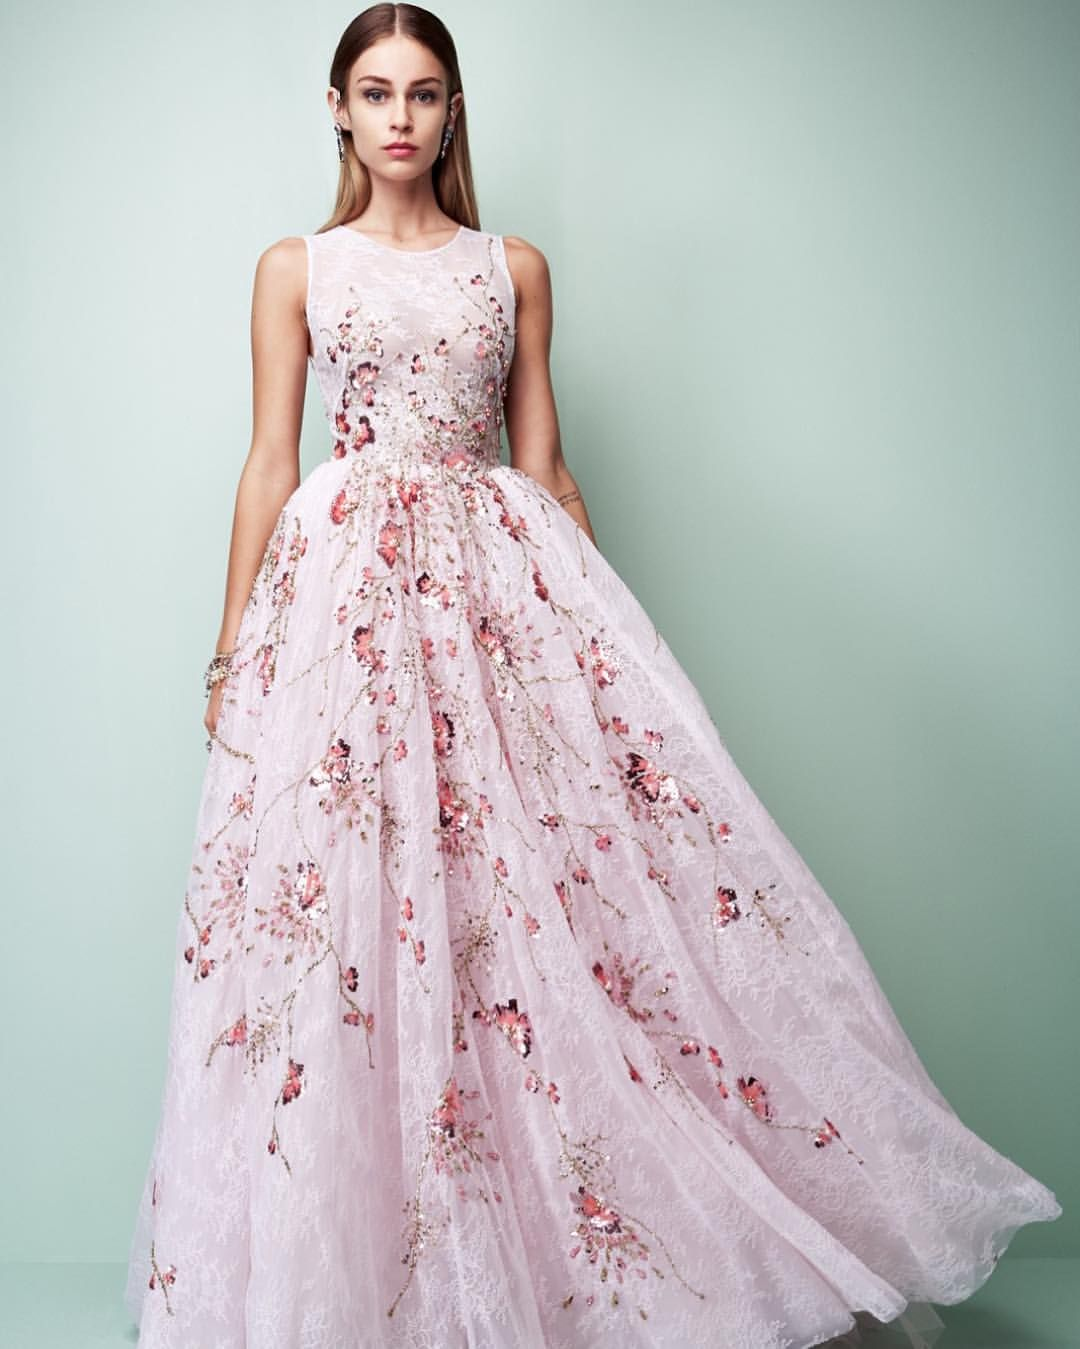 Georges hobeika gowns pinterest prom gowns and clothes